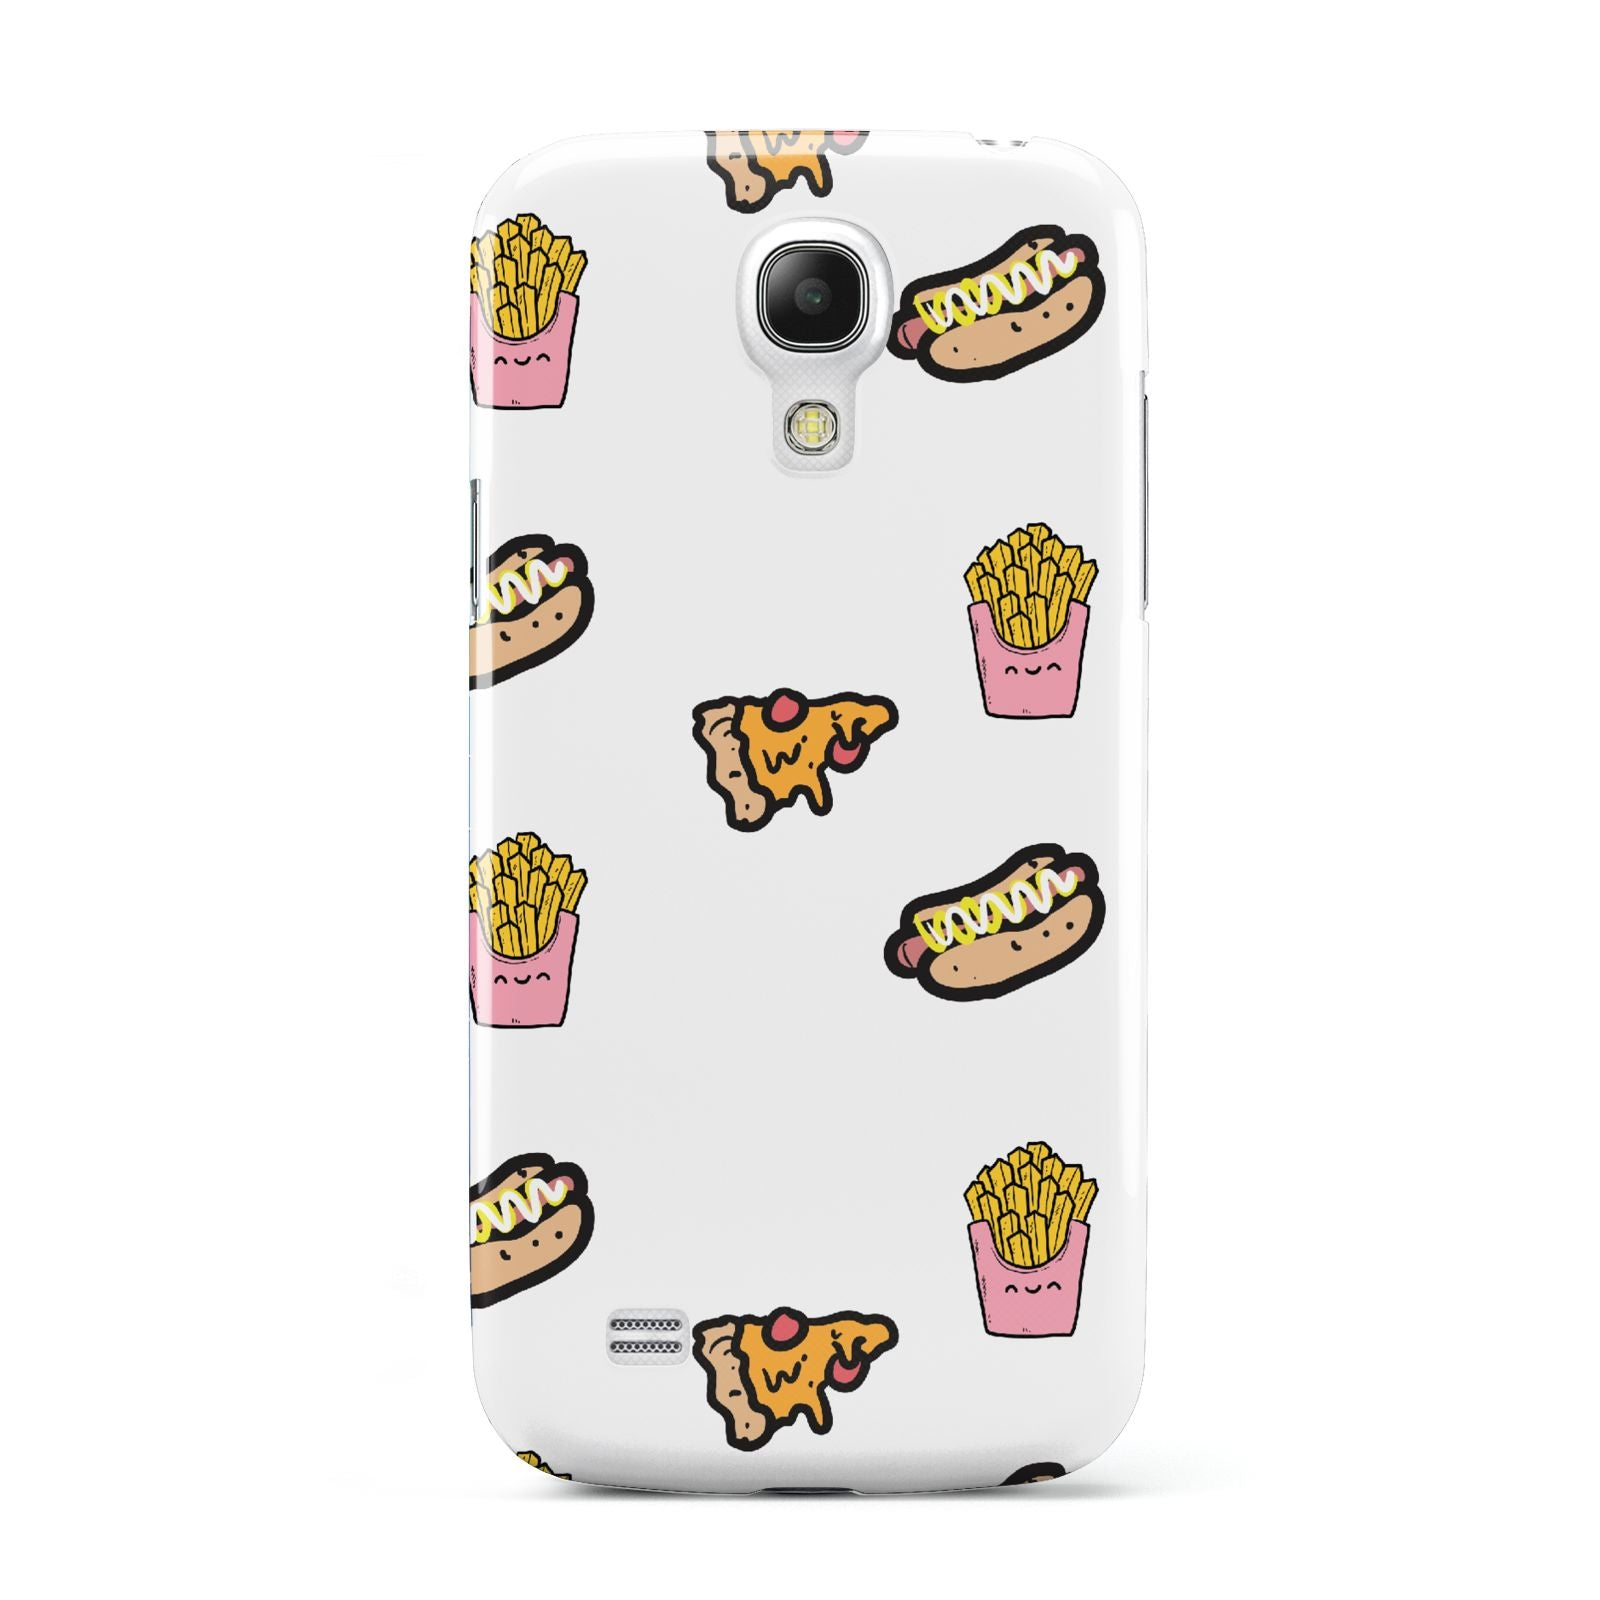 Fries Pizza Hot Dog Samsung Galaxy S4 Mini Case